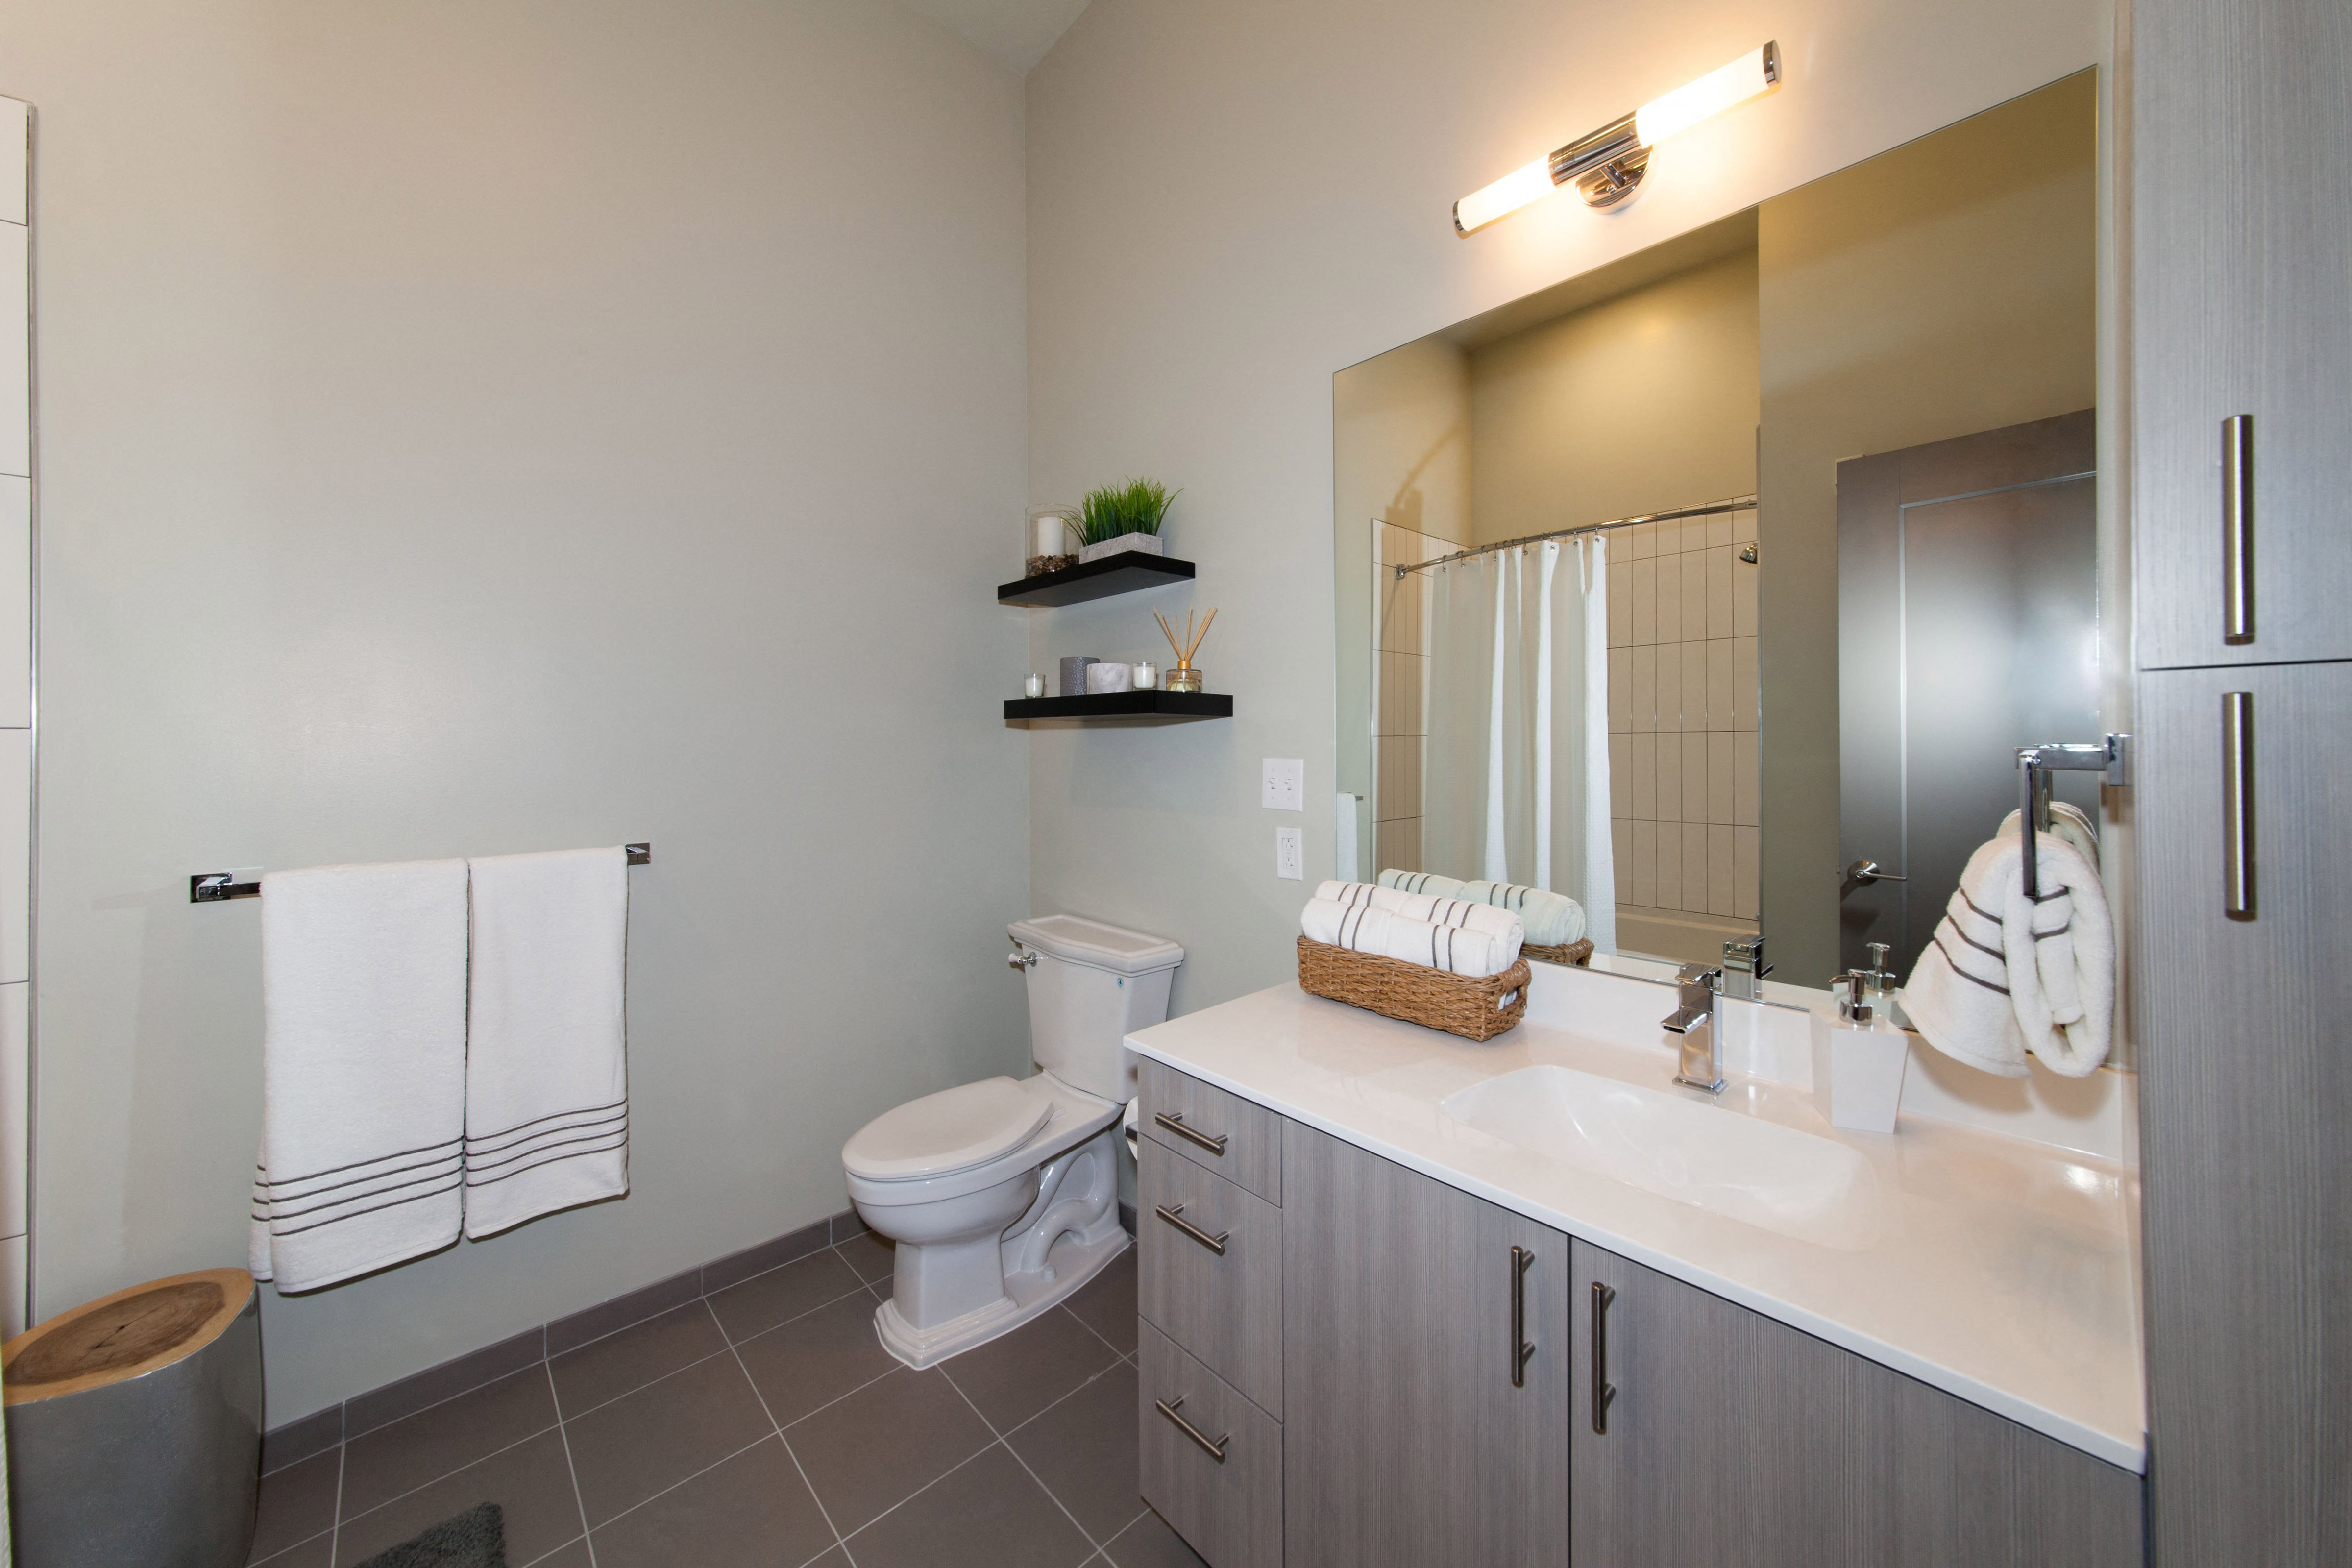 Spacious Bathrooms at The Tremont, Burlington, MA 01803